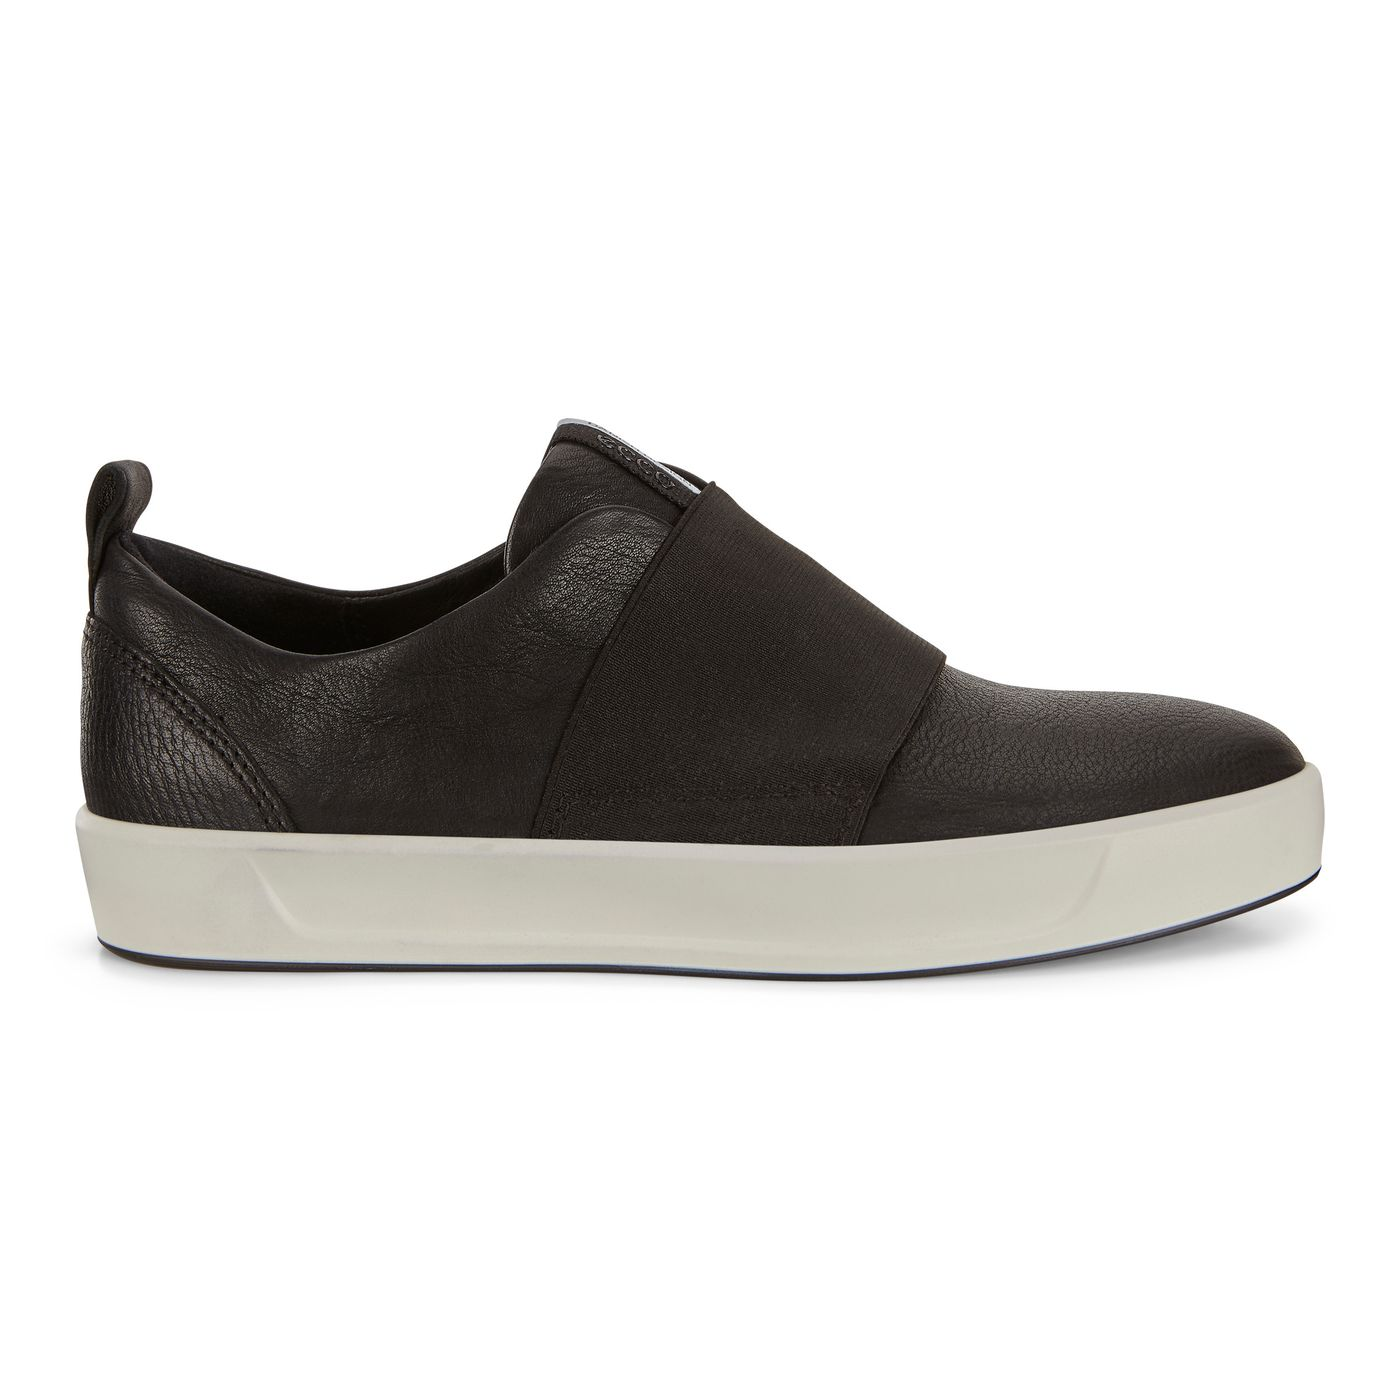 ecco soft 8 band low - 58% OFF